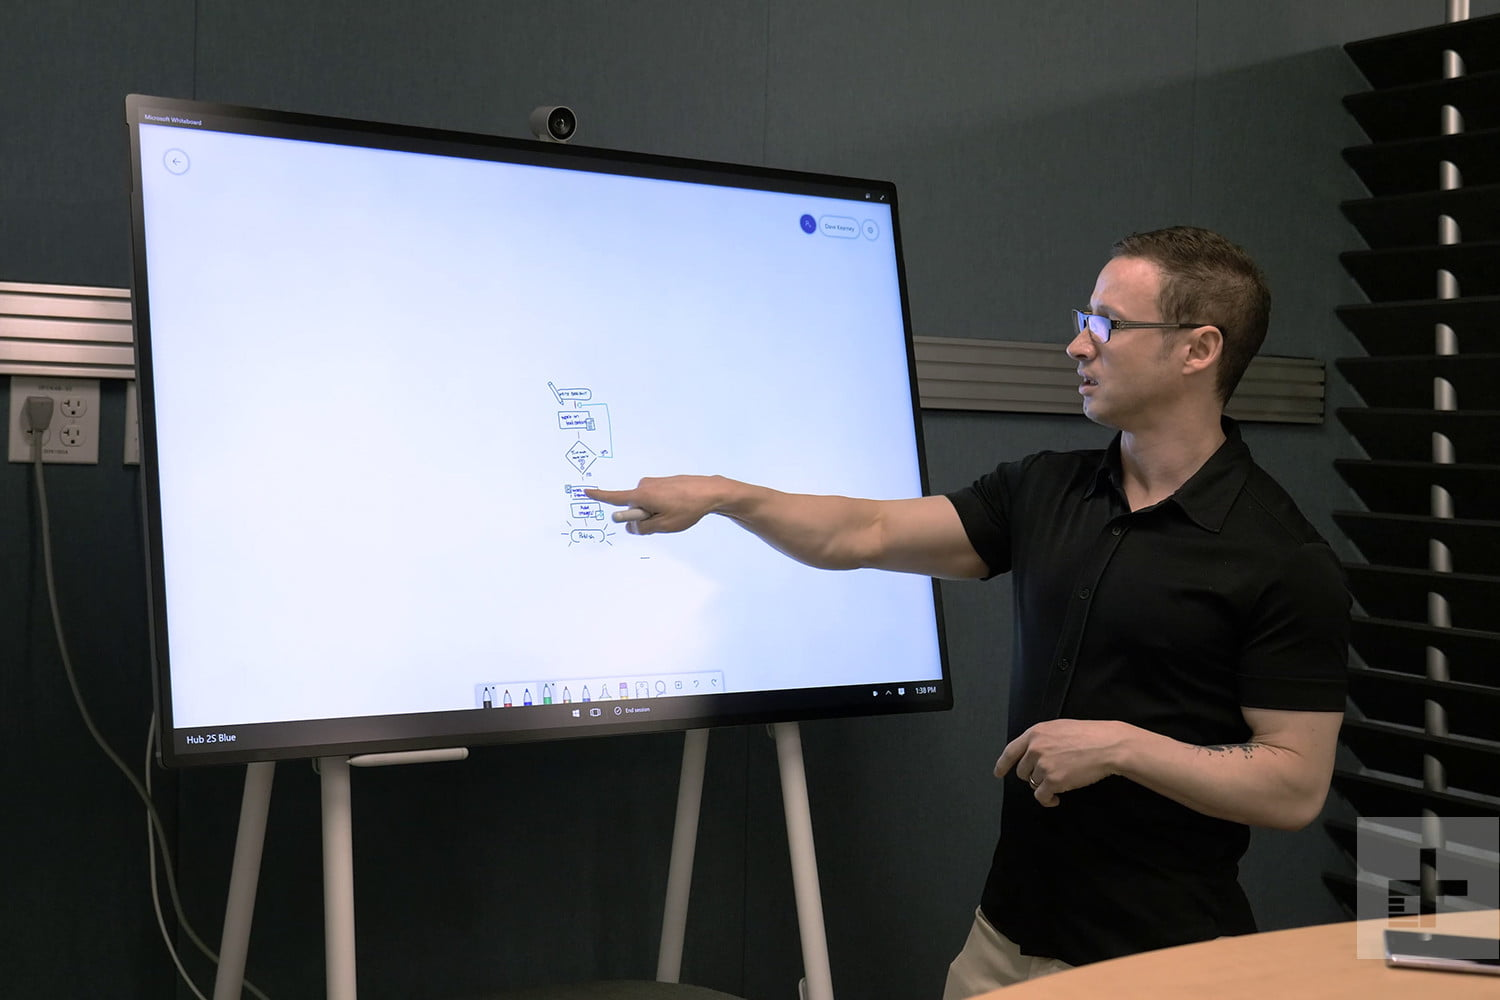 revision surfacehub 2s microsofthub2s handson 3